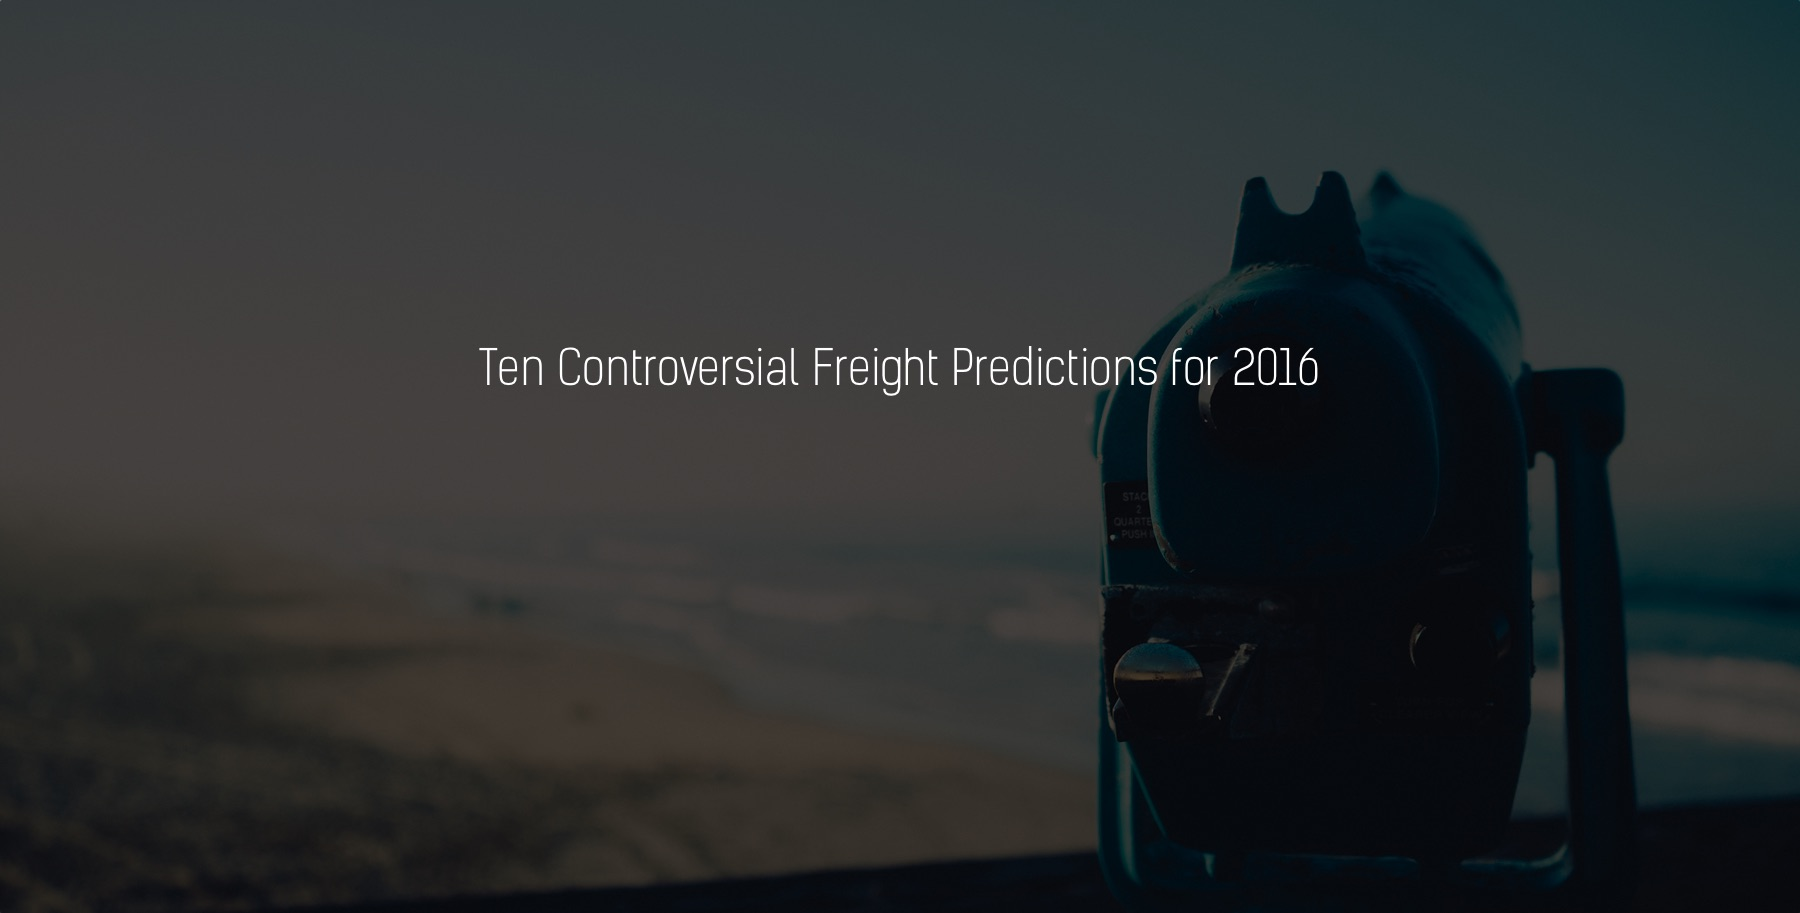 Controversial freight predictions for 2016